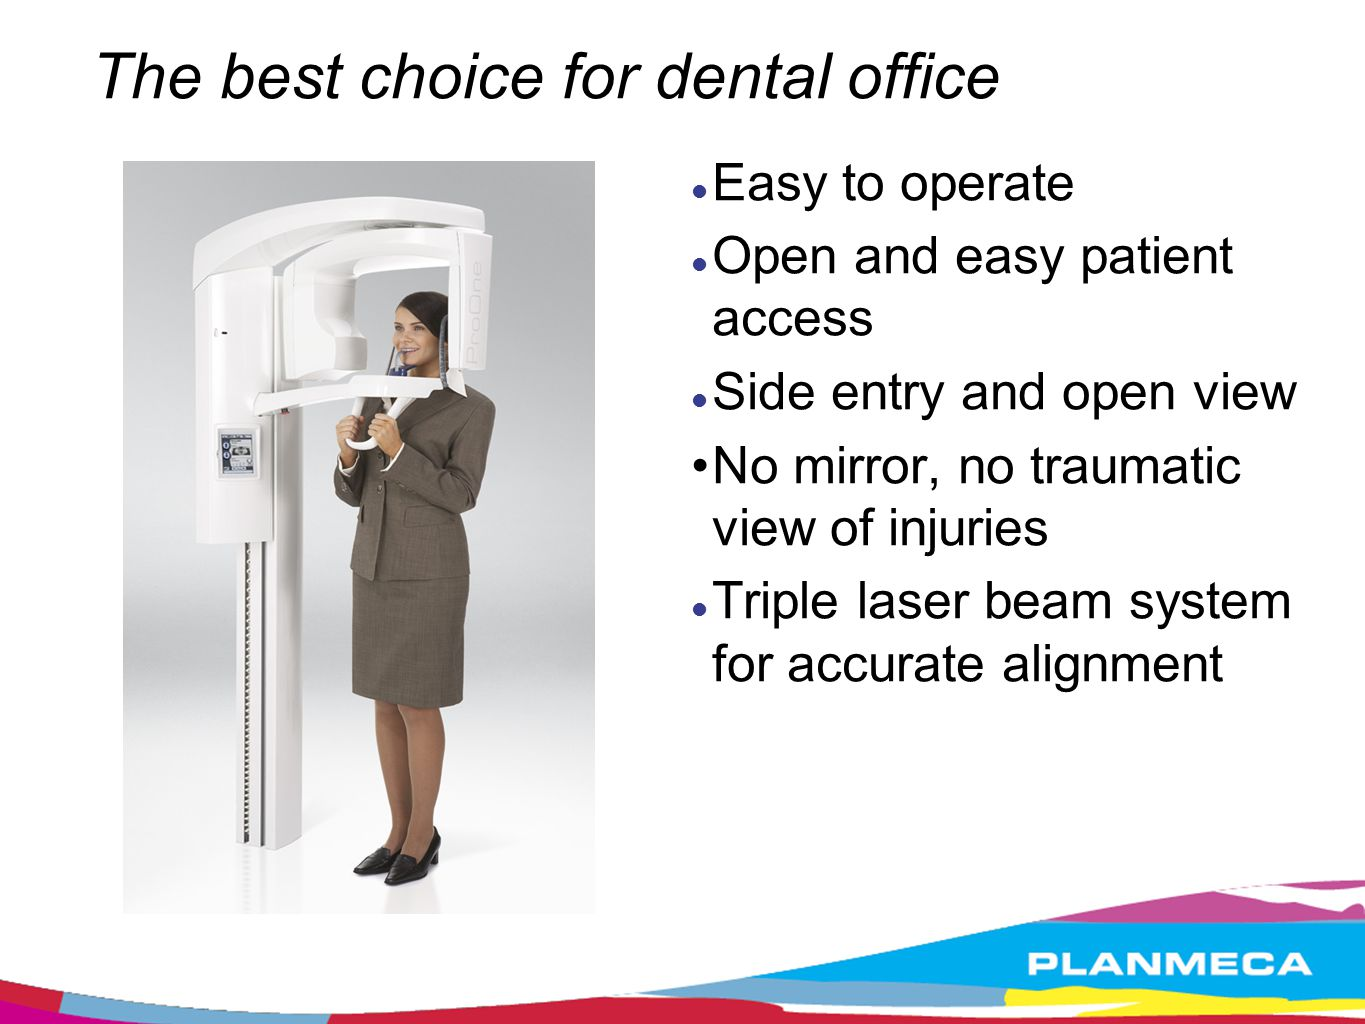 The best choice for dental office